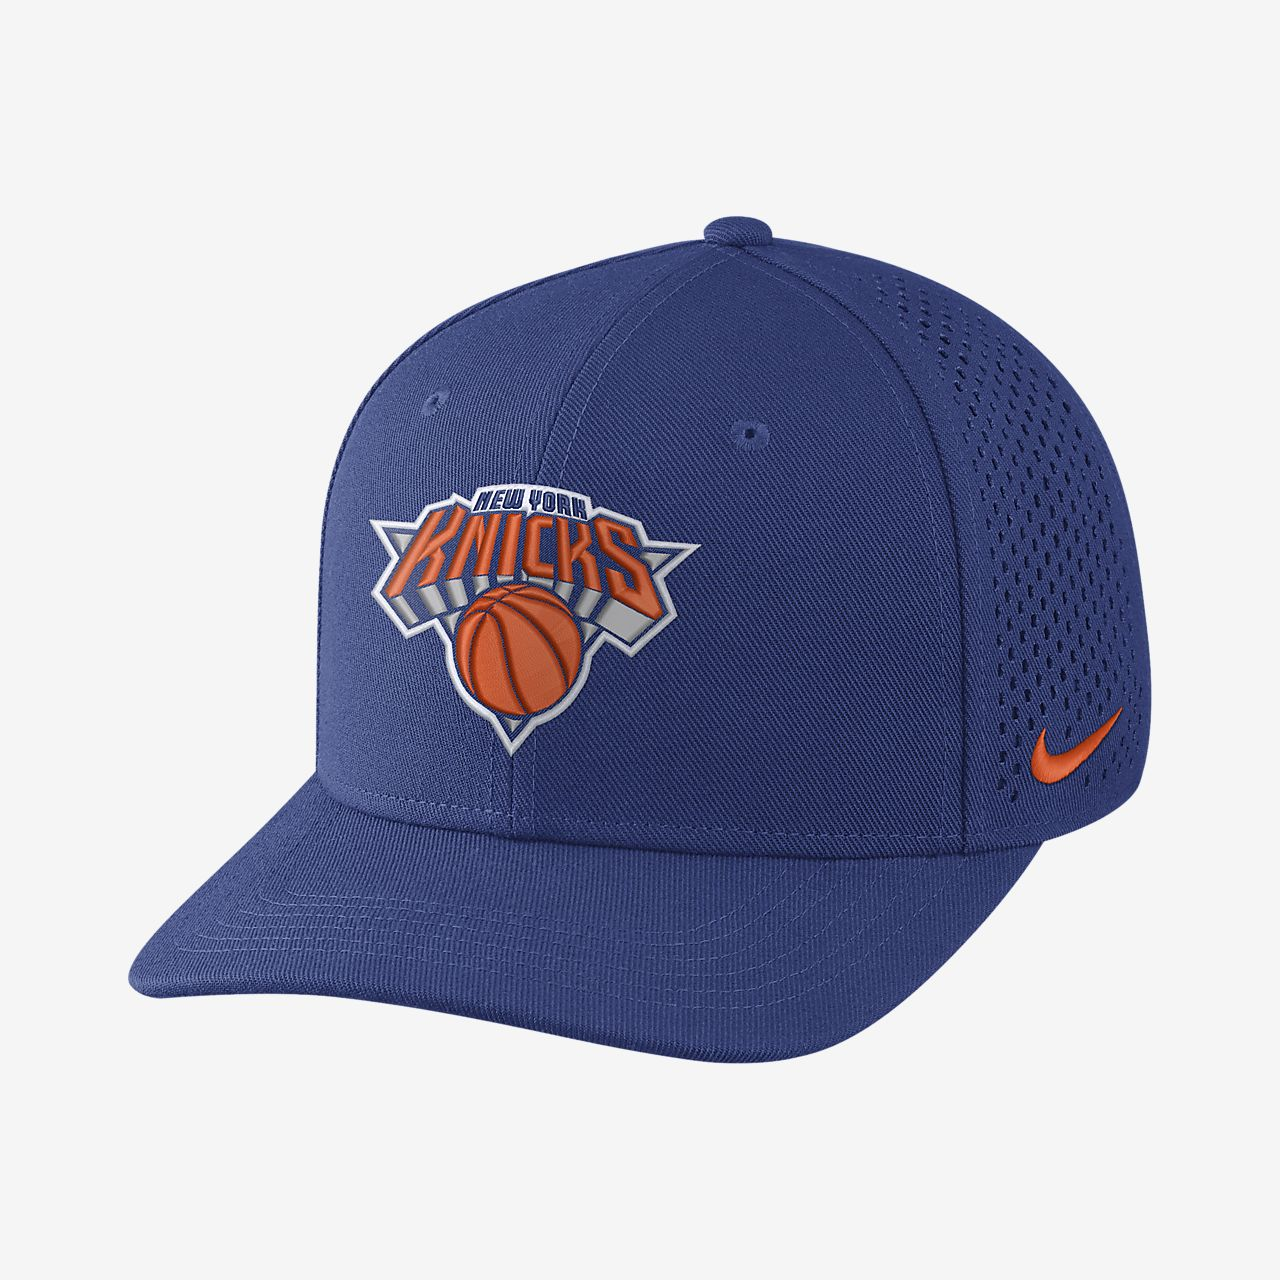 New York Knicks Nike AeroBill Classic99 Unisex Adjustable NBA Hat